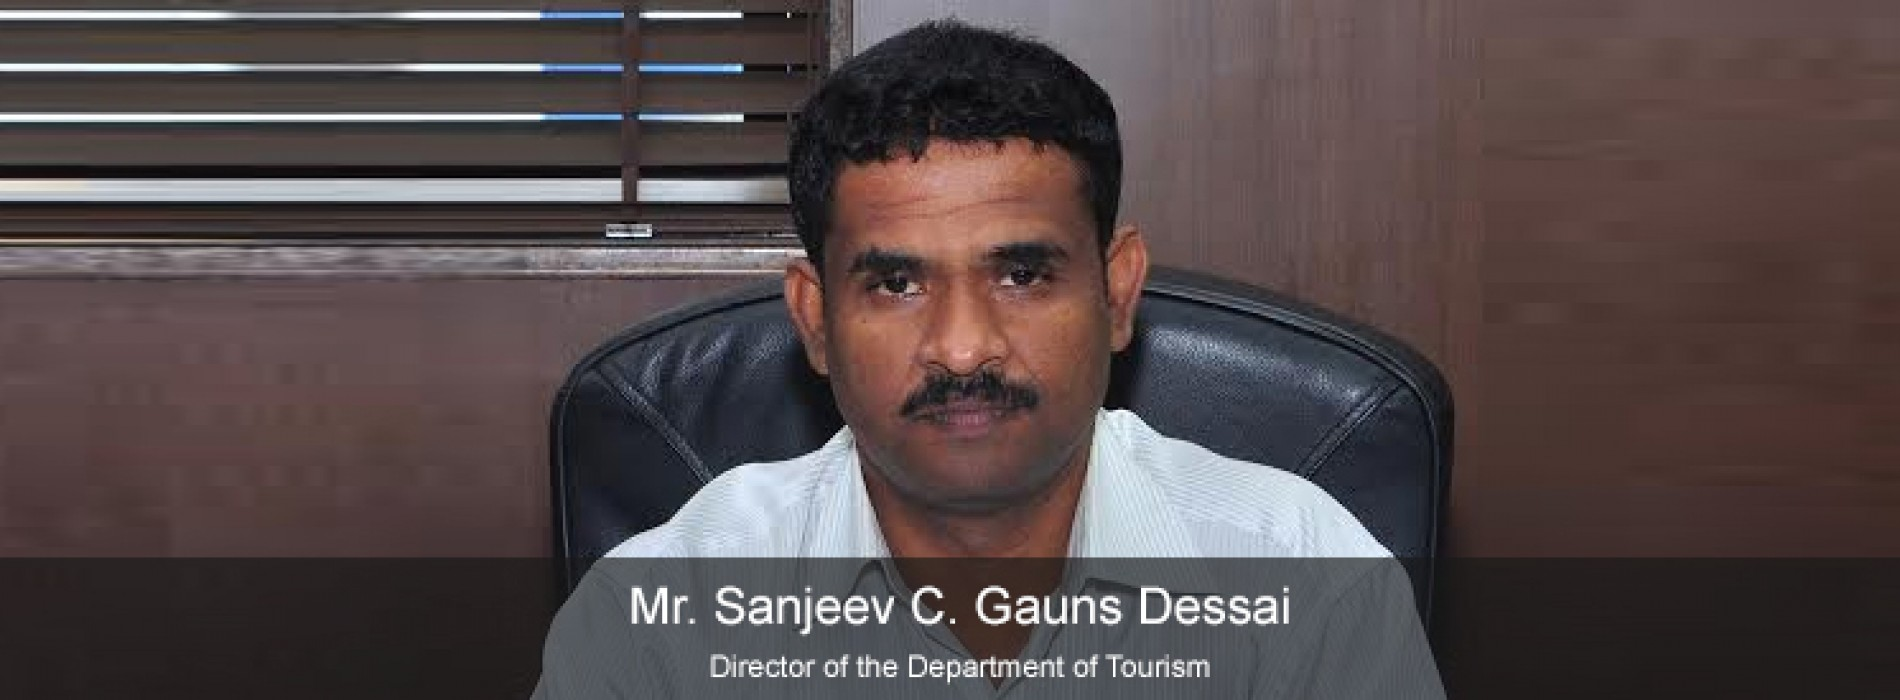 Mr. Sanjeev C. Gauns Dessai takes over as new Tourism Director of Goa